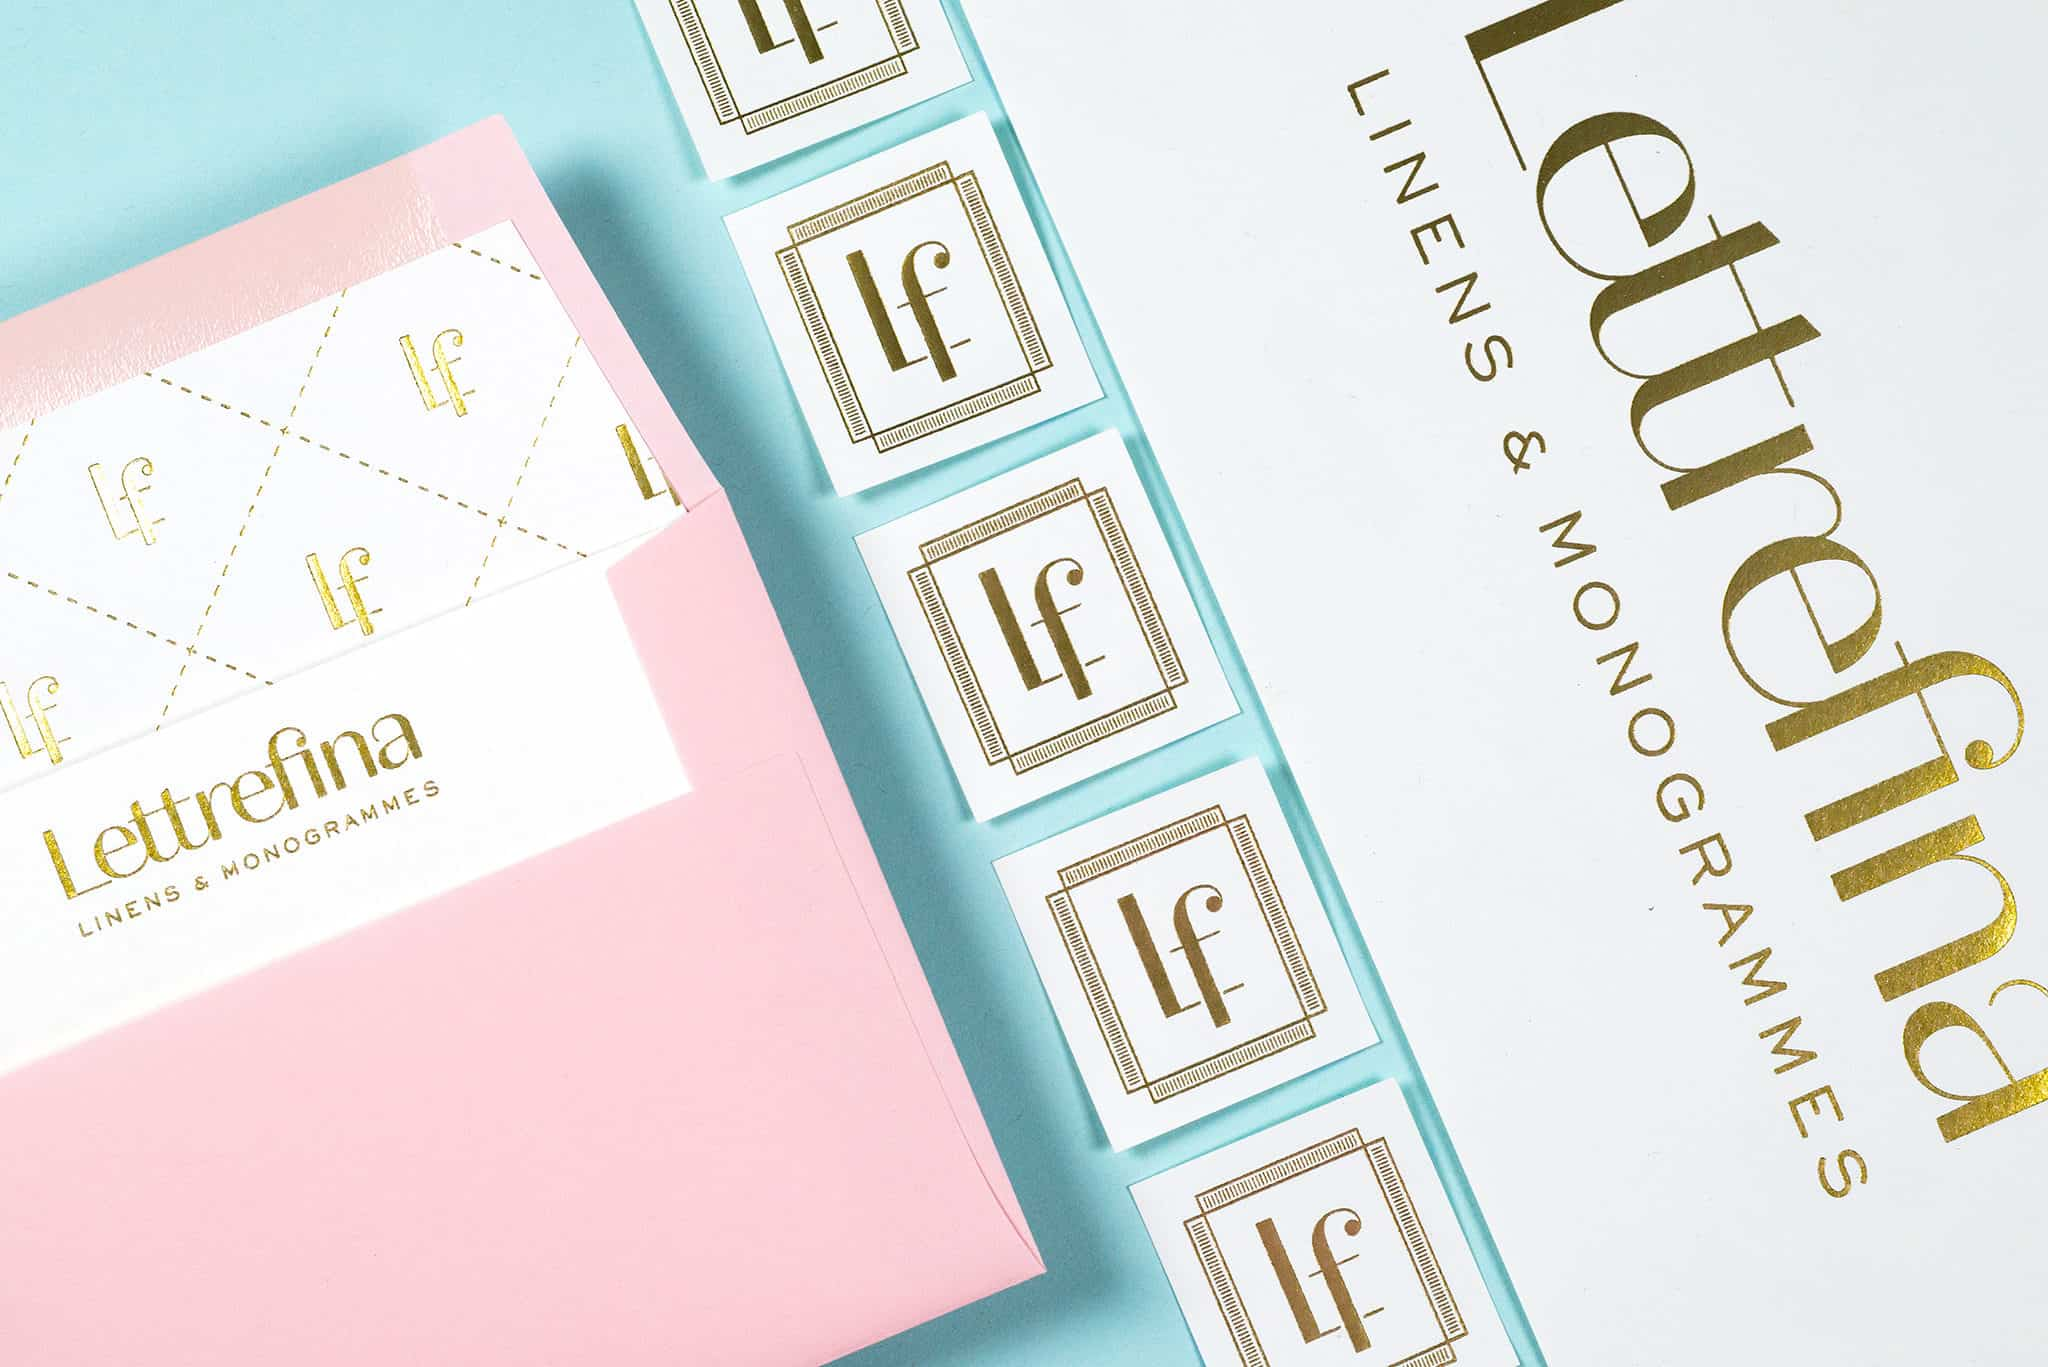 Stationery, envelopes, and foil stamped stickers for Lettrefina Linens & Monogrammes | Designed by Field of Study: A branding and graphic design consultancy | Houston TX | Jennifer Blanco & John Earles